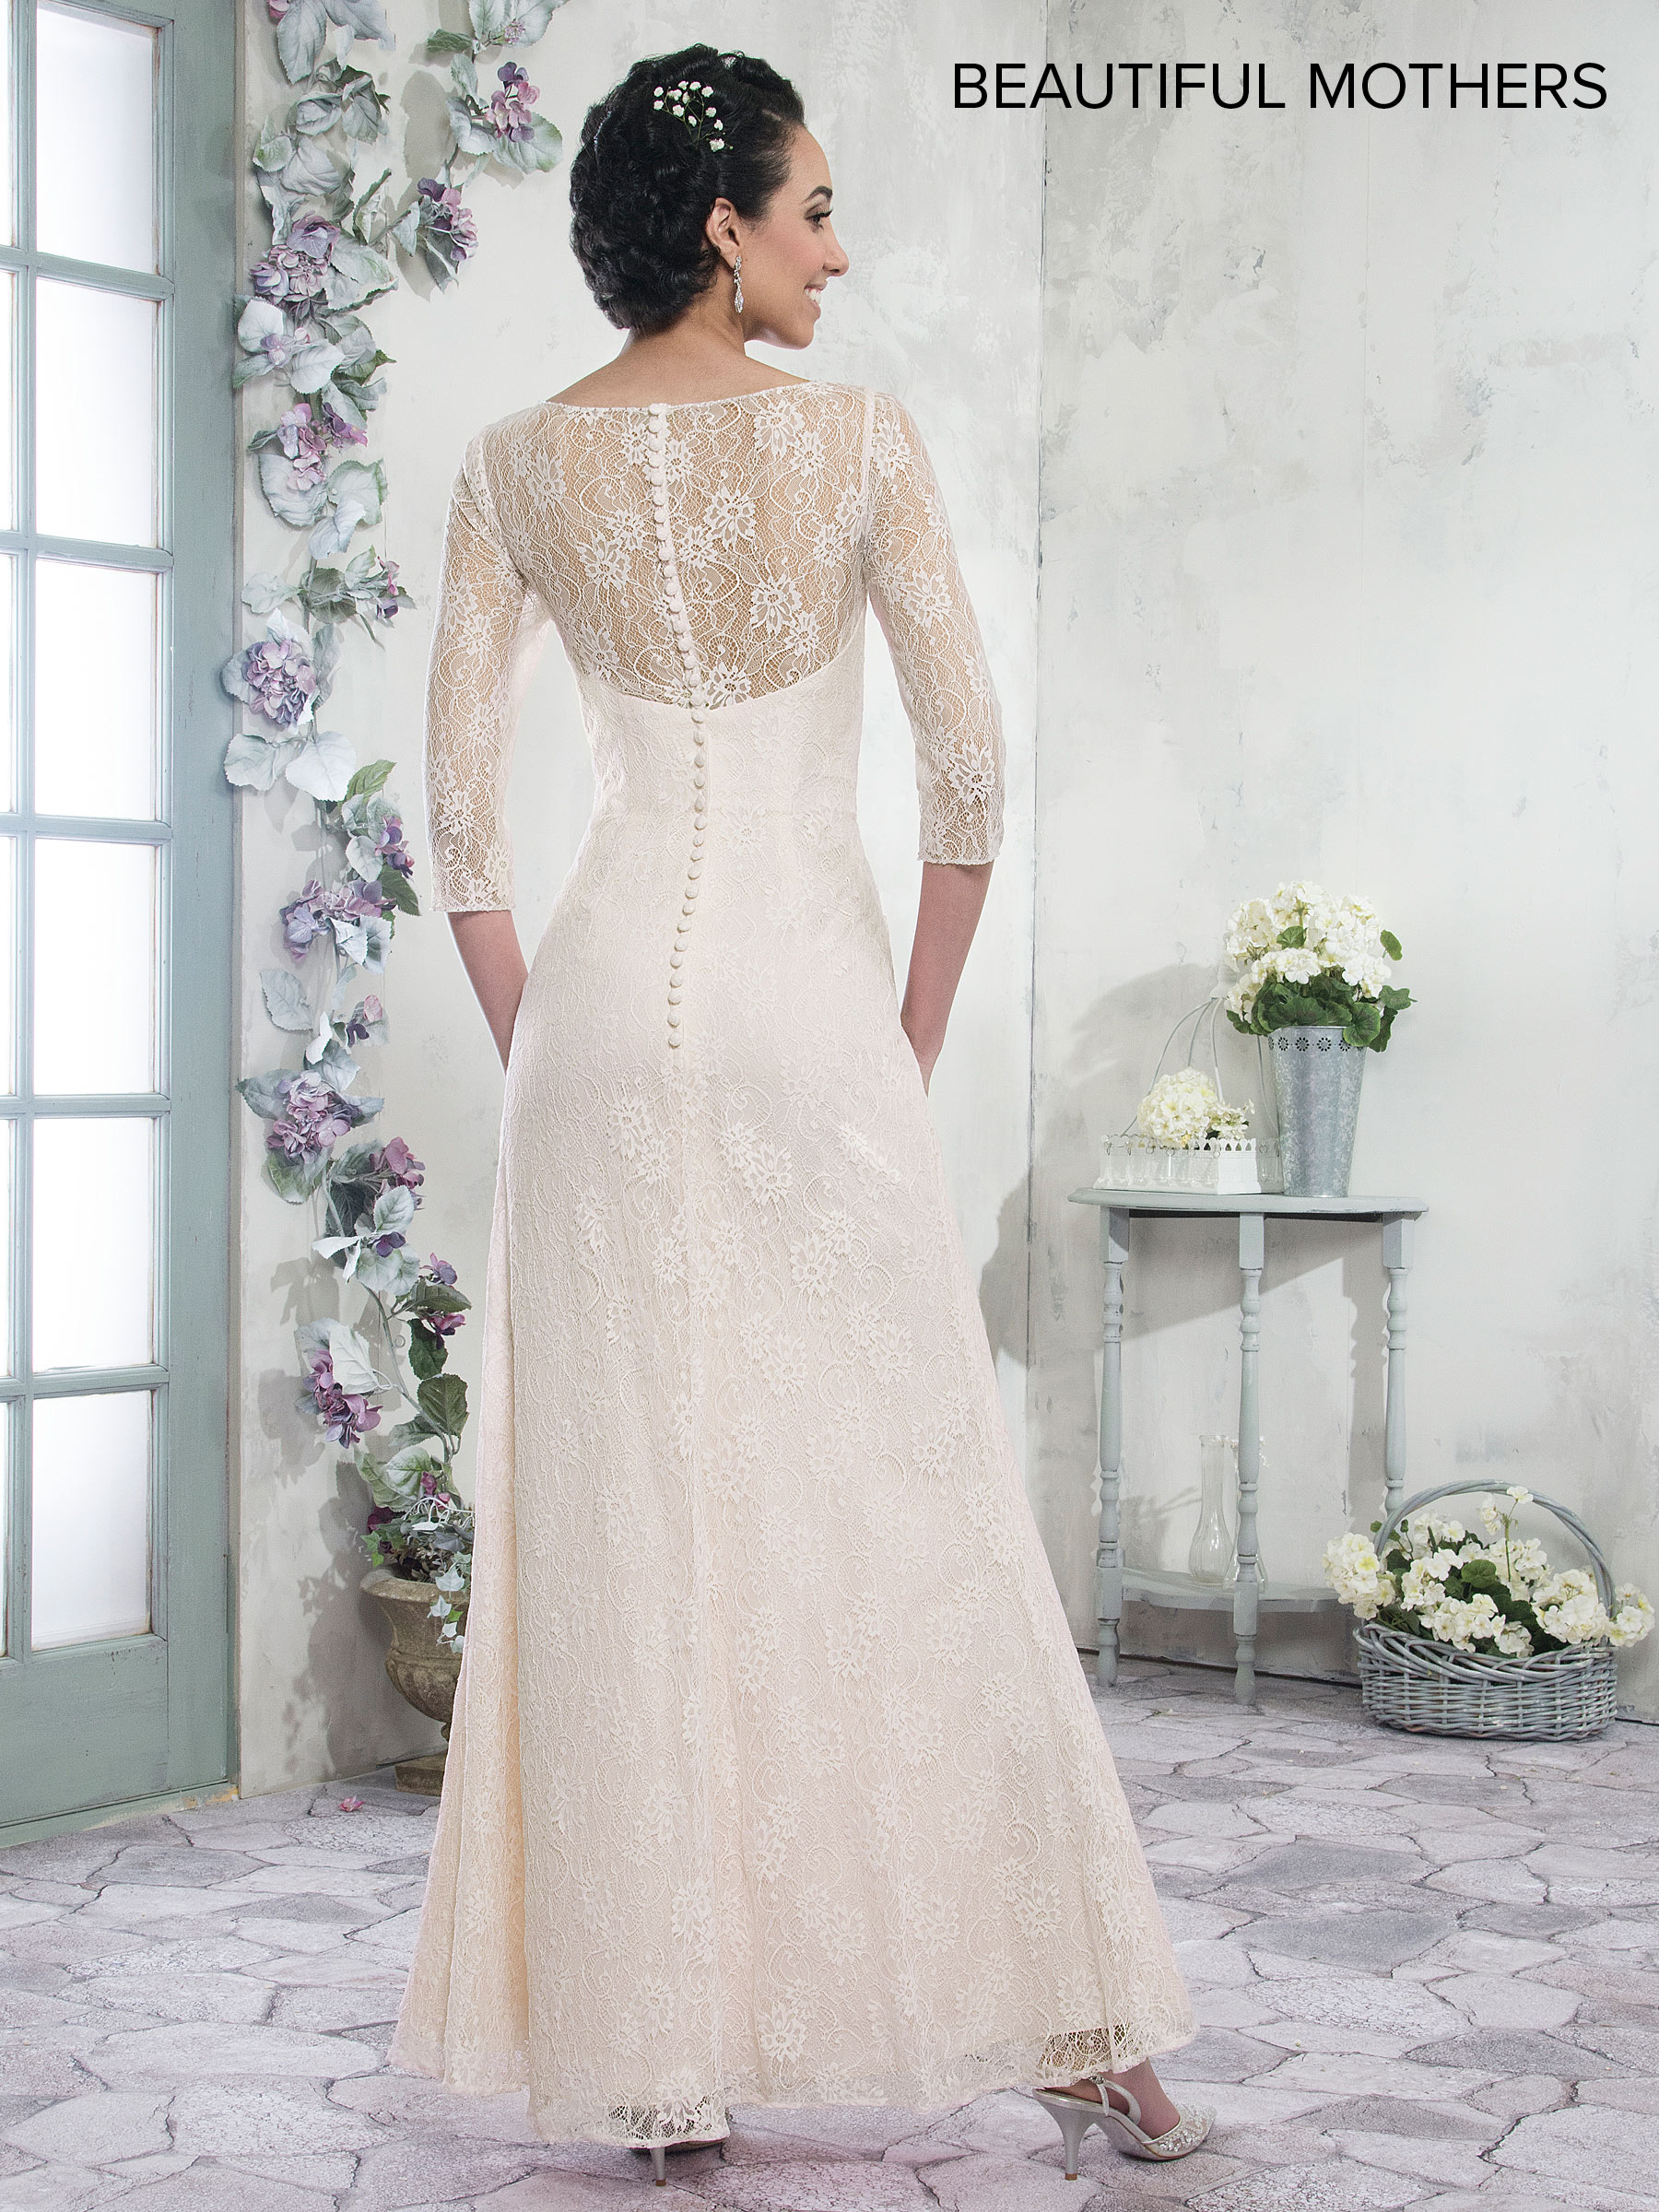 Mother Of The Bride Dresses | Beautiful Mothers | Style - MB8005